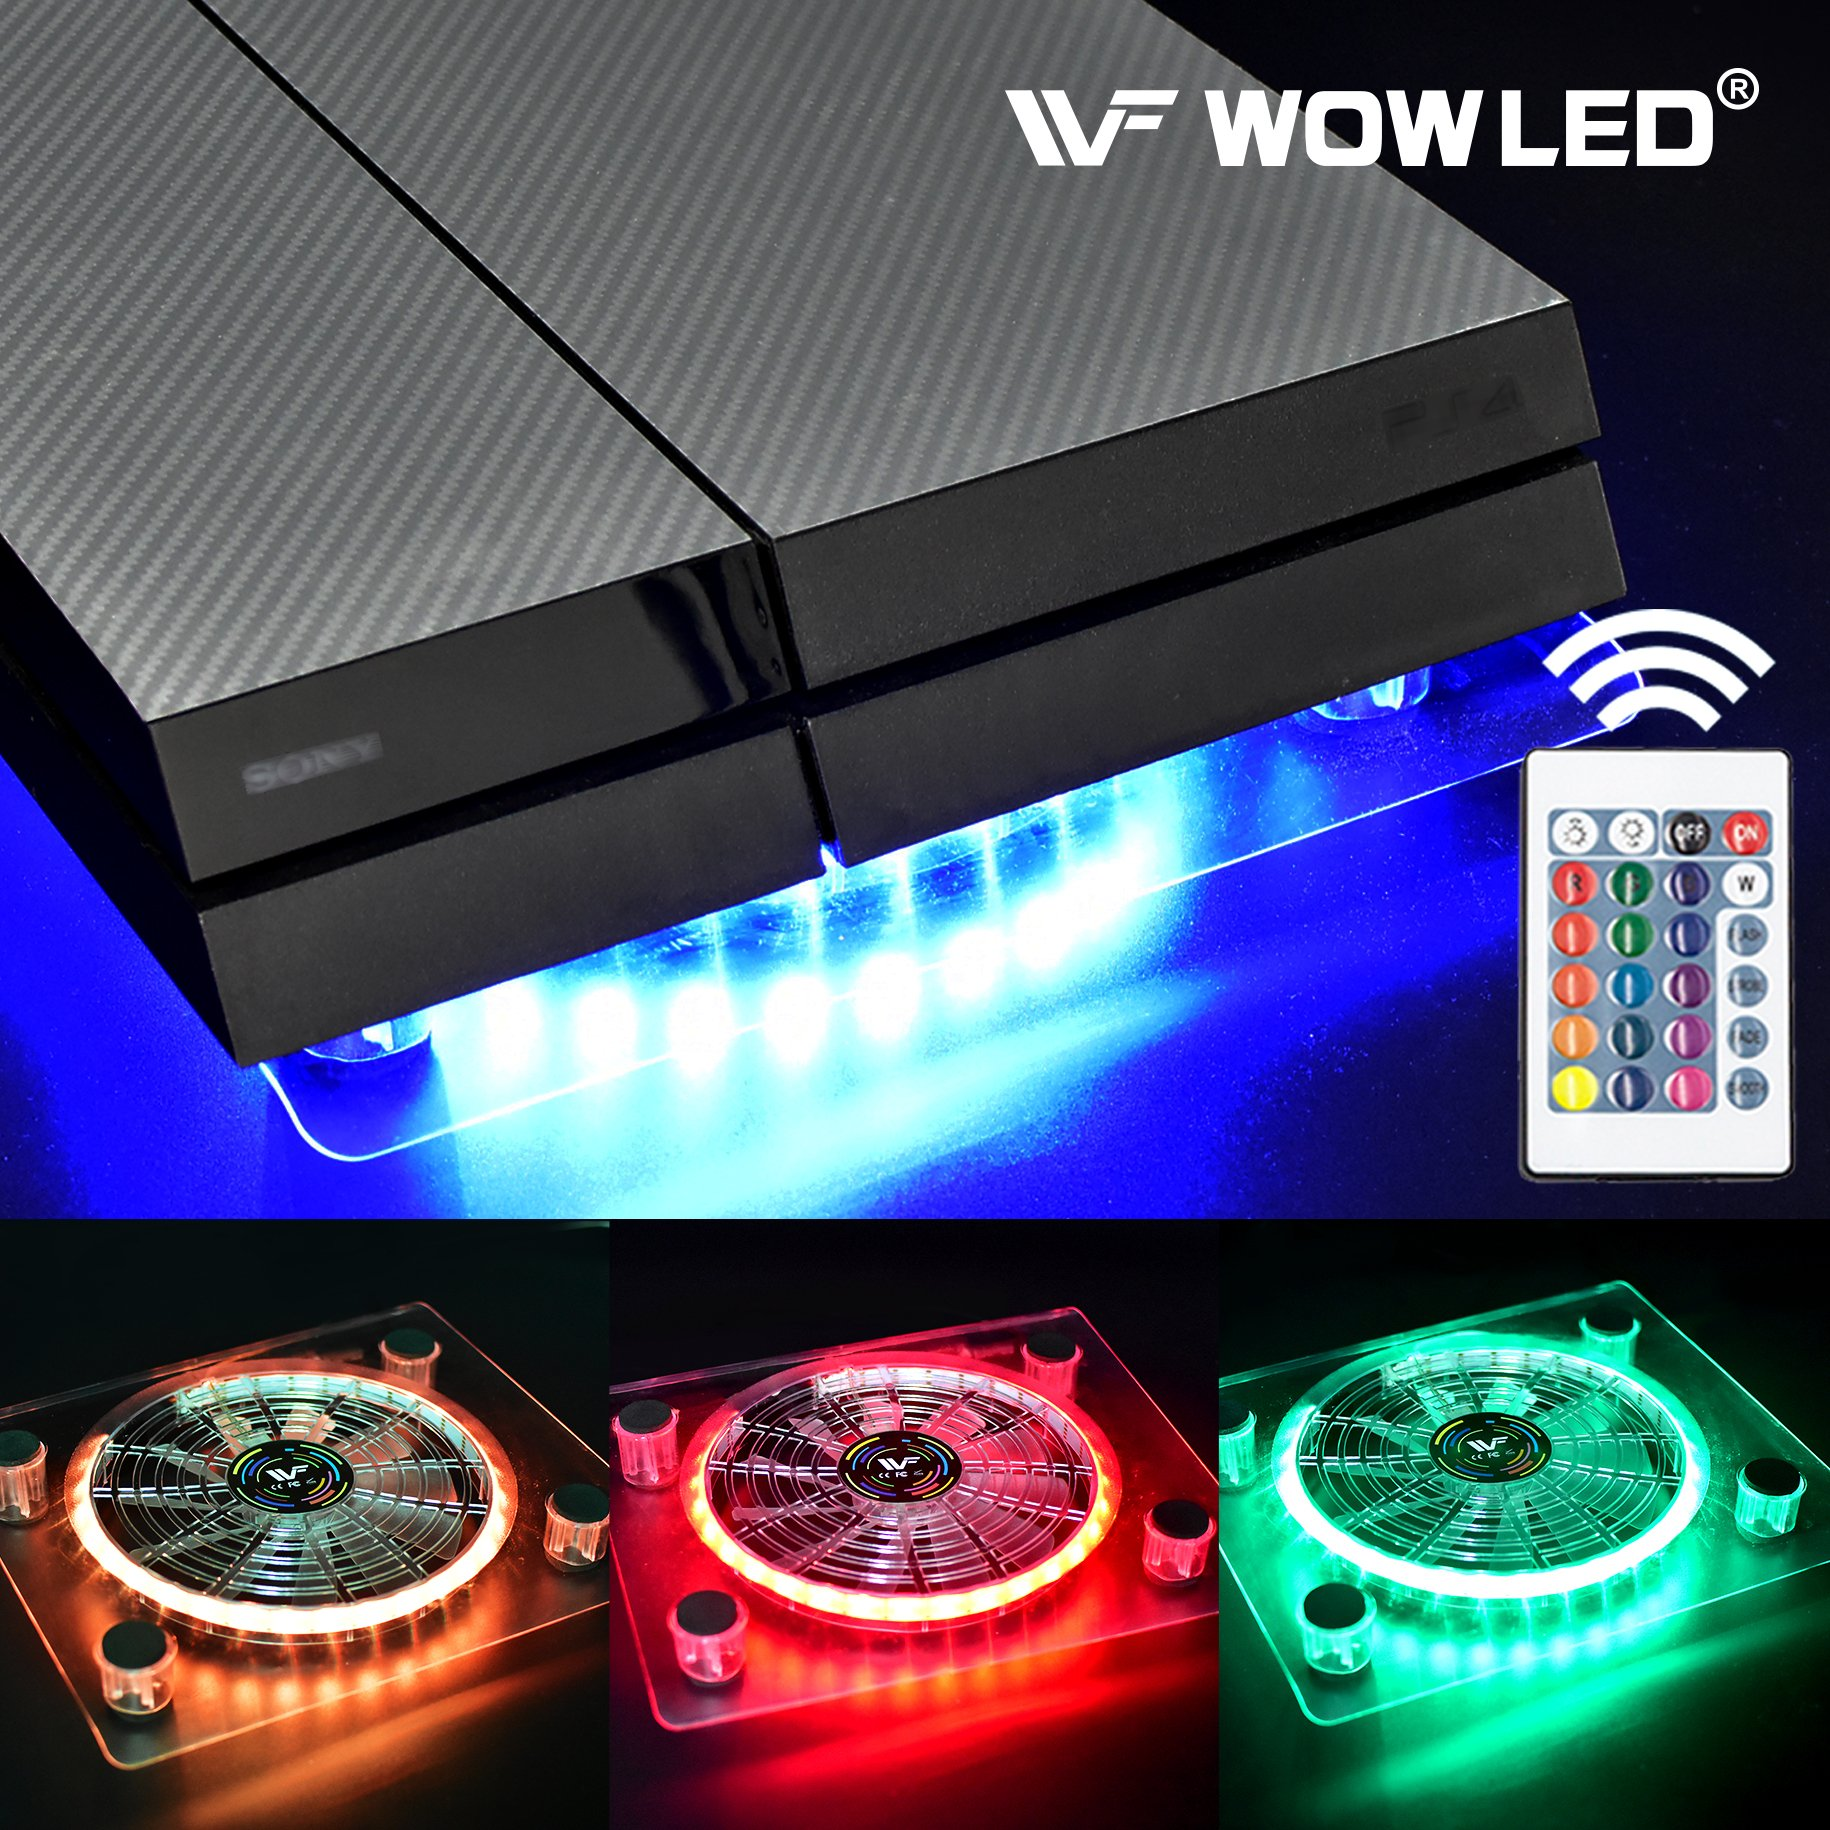 WOWLED Wireless IR Remote Control 24 keys RGB USB LED Thermal Case Fan Cooler Cooling Fan Pad Stand for PC Case CPU Cooler Computer Gaming PS4 Playstation 4 Consoles Laptop Notebook XBOX One Radiators by WOWLED